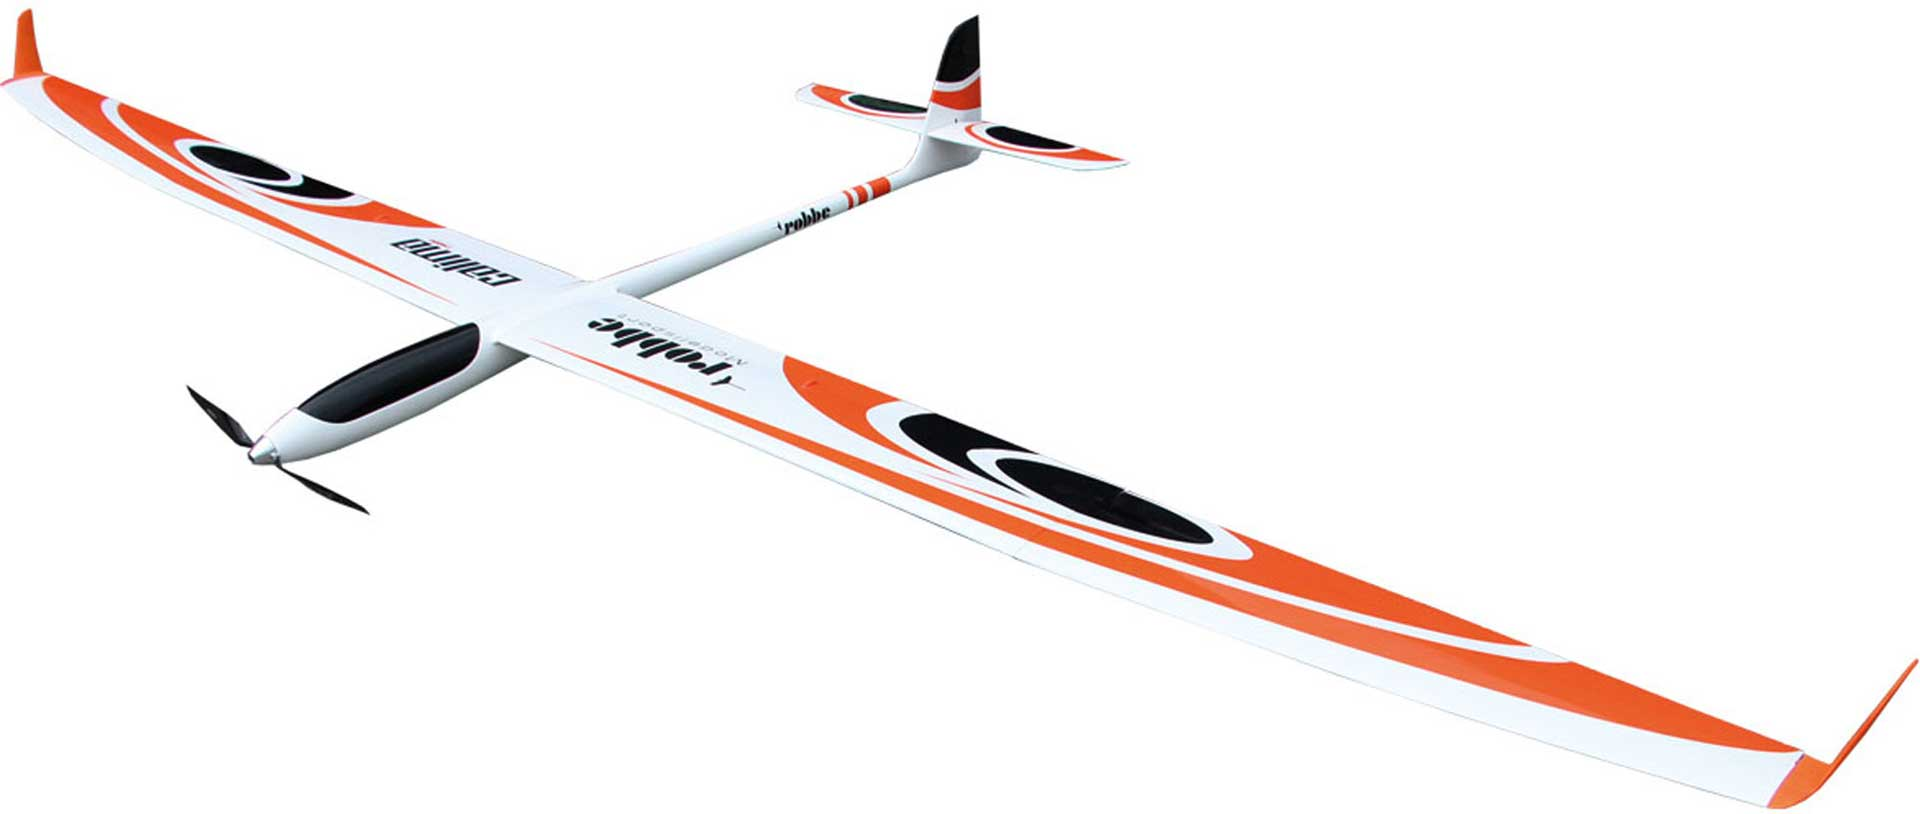 Robbe Modellsport CALIMA PNP HIGH PERFORMANCE GLIDER WITH 4-FLAP WINGS AND INTEGRATED SERVOS